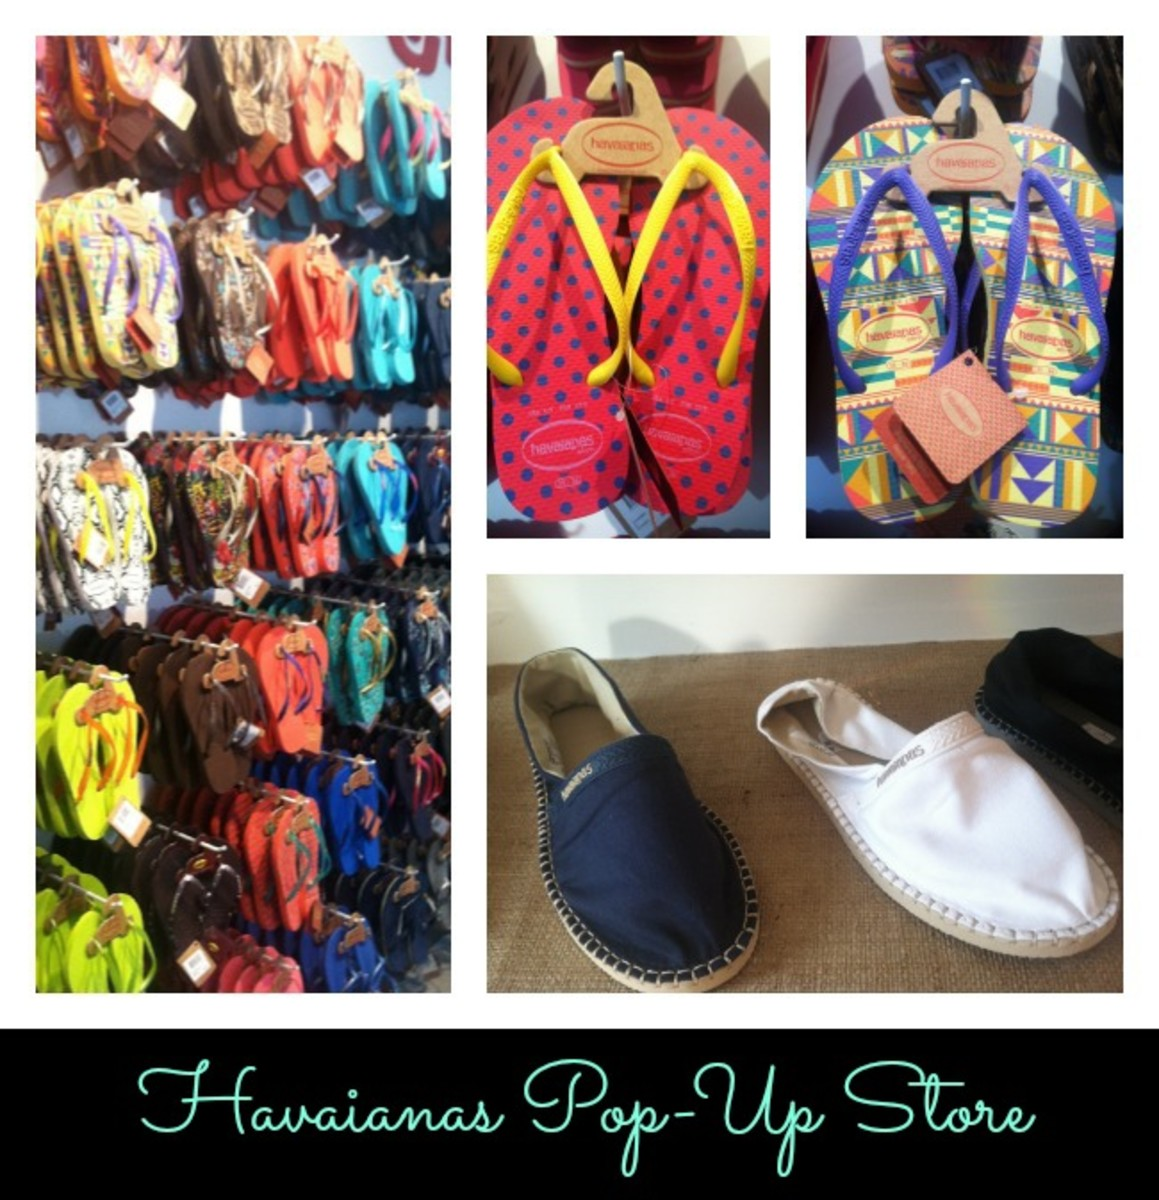 d44f054fadc136 Havaianas NYC Pop-Up Shop Party - MomTrends